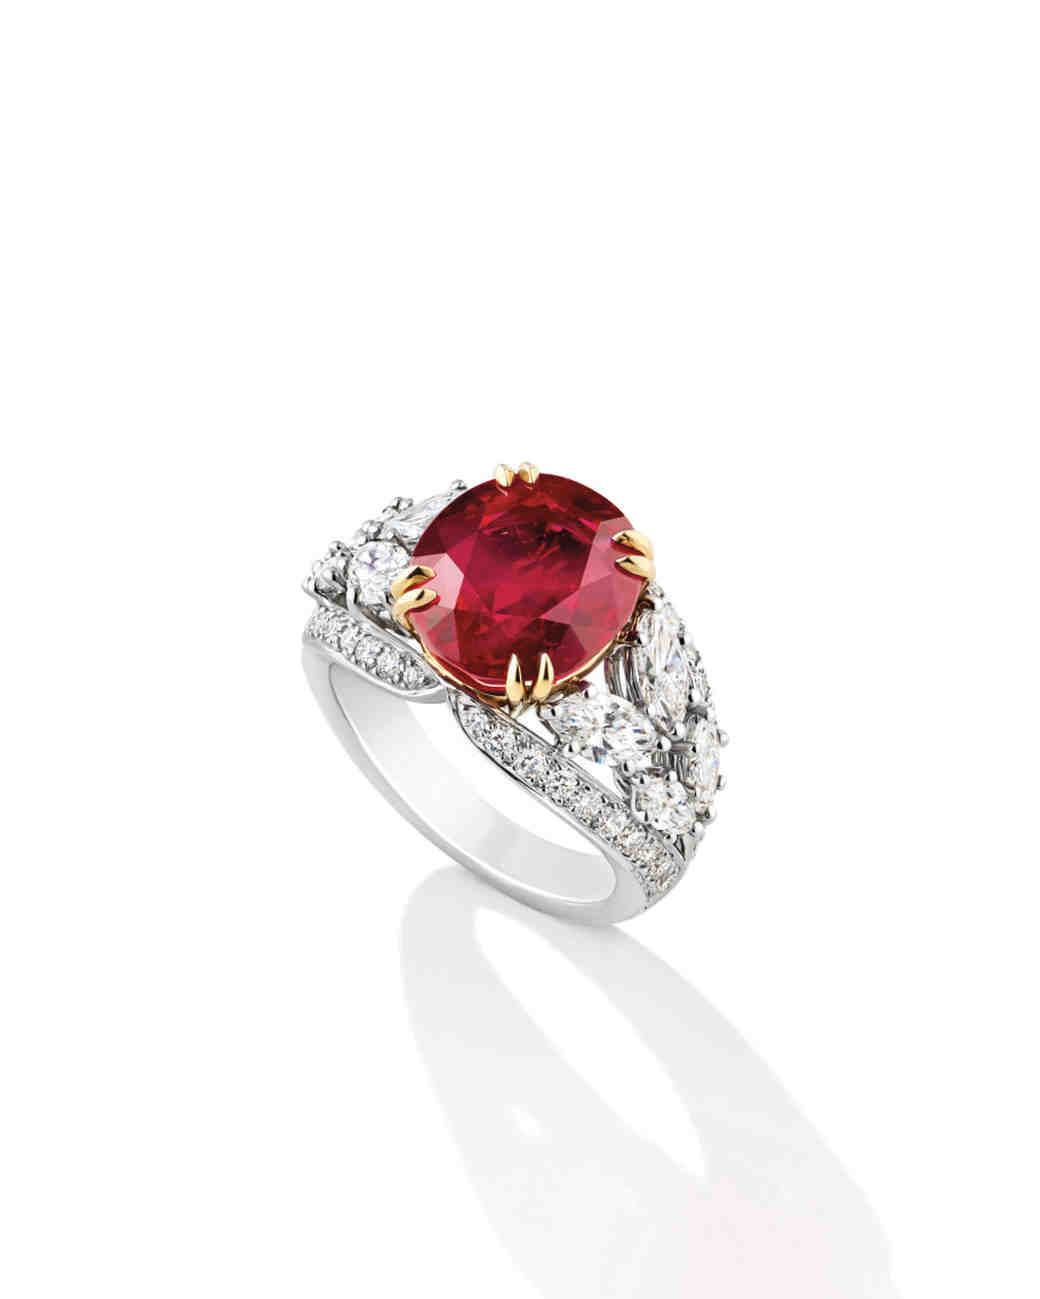 Harry Winston Oval Ruby Ring with Marquise-Cut Side Stones